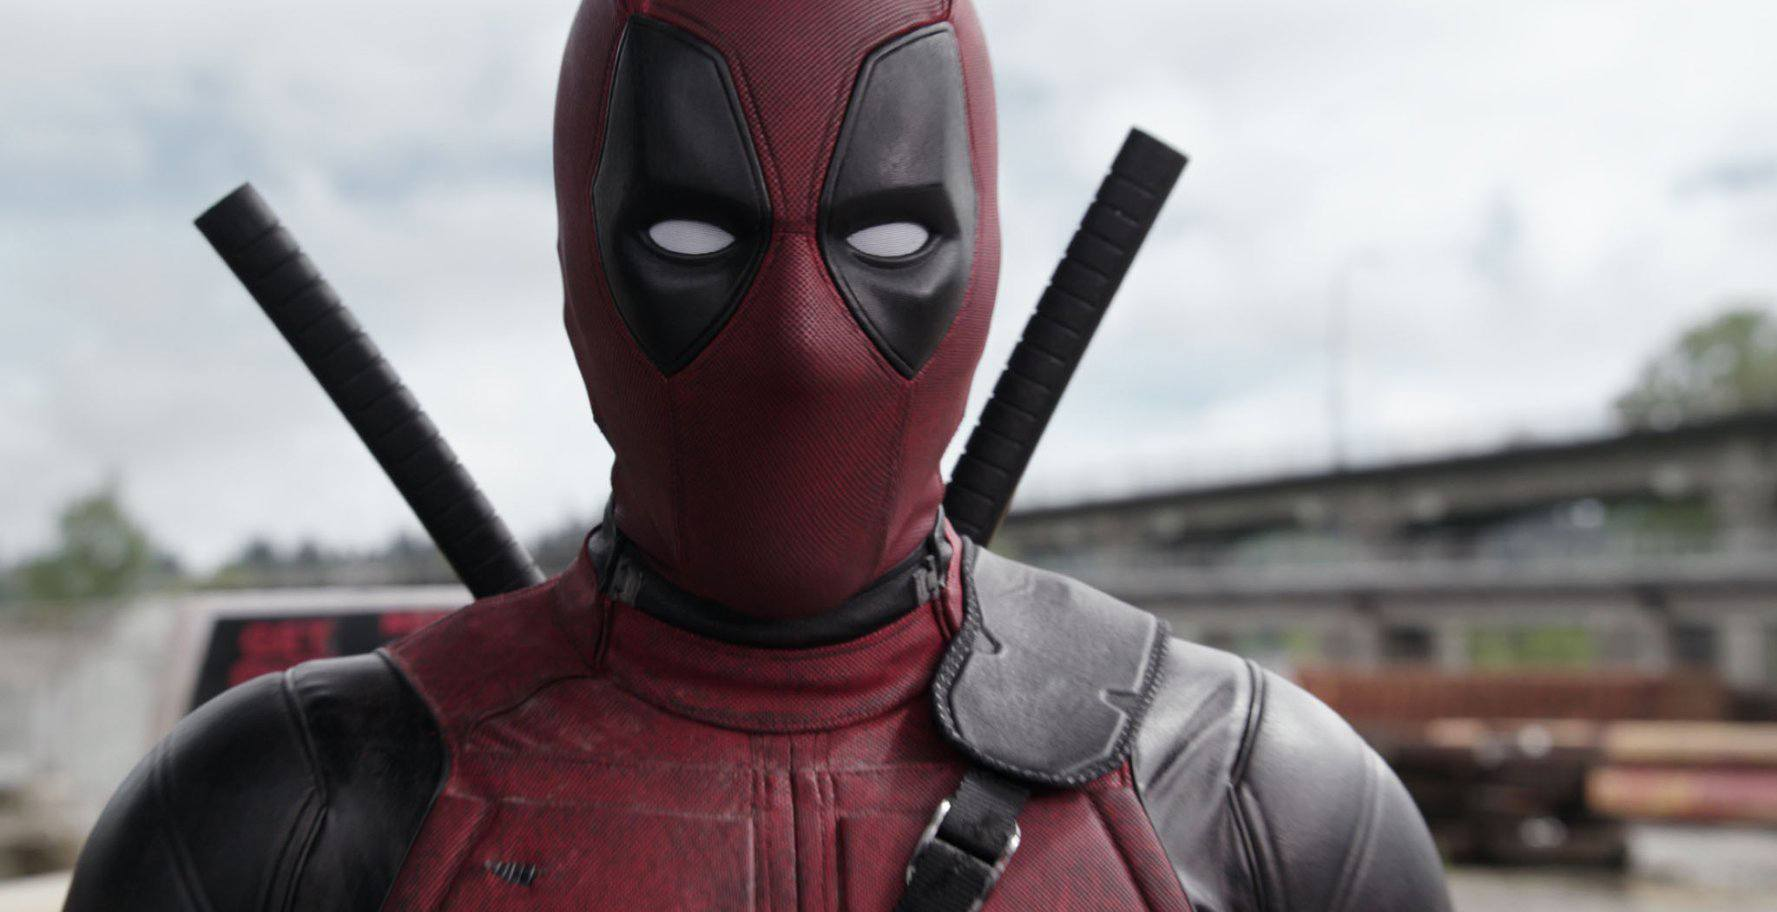 Deadpool 2 stunt driver dies in on-set accident in Vancouver